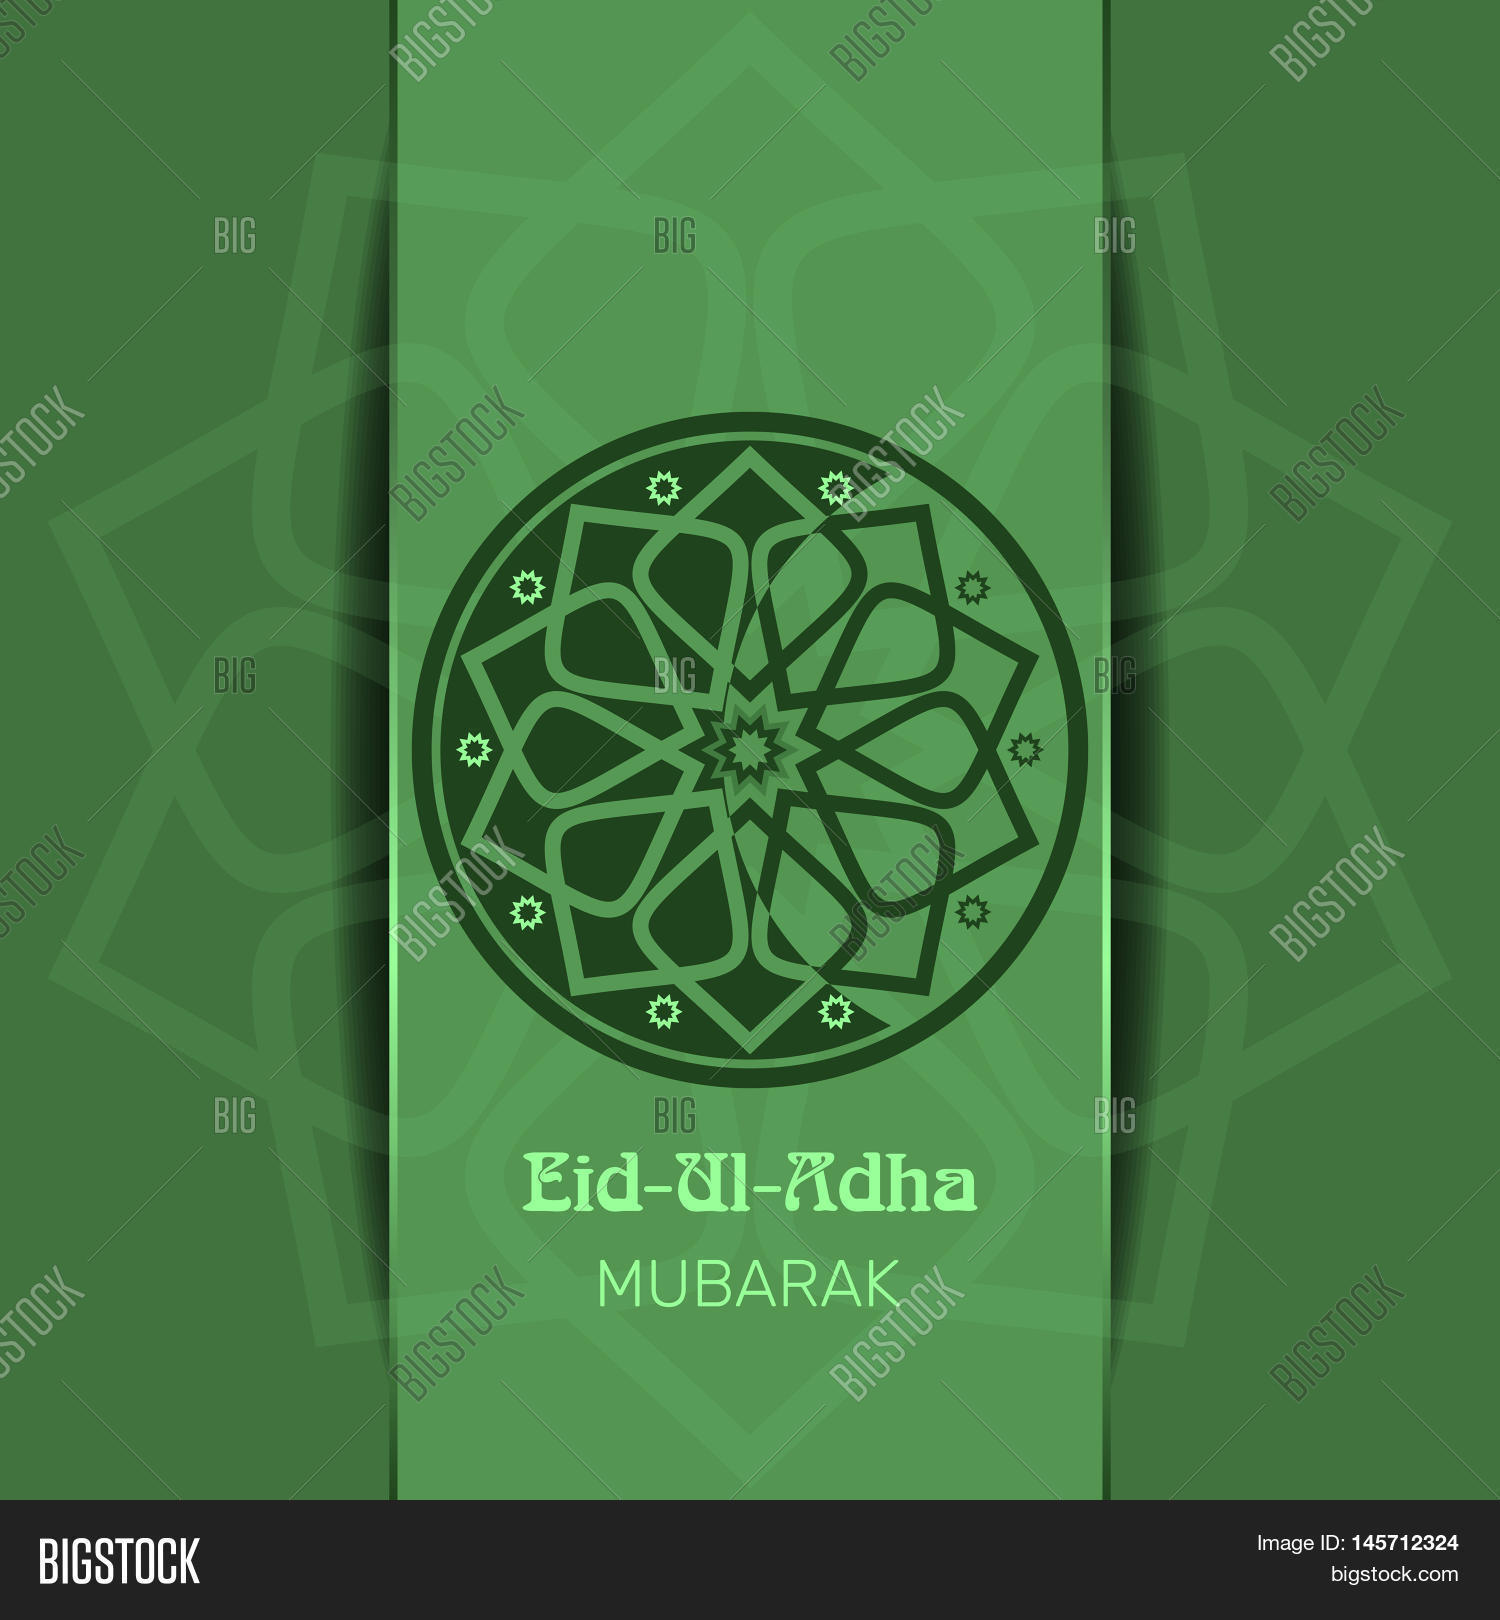 Islamic Green Image Photo Free Trial Bigstock